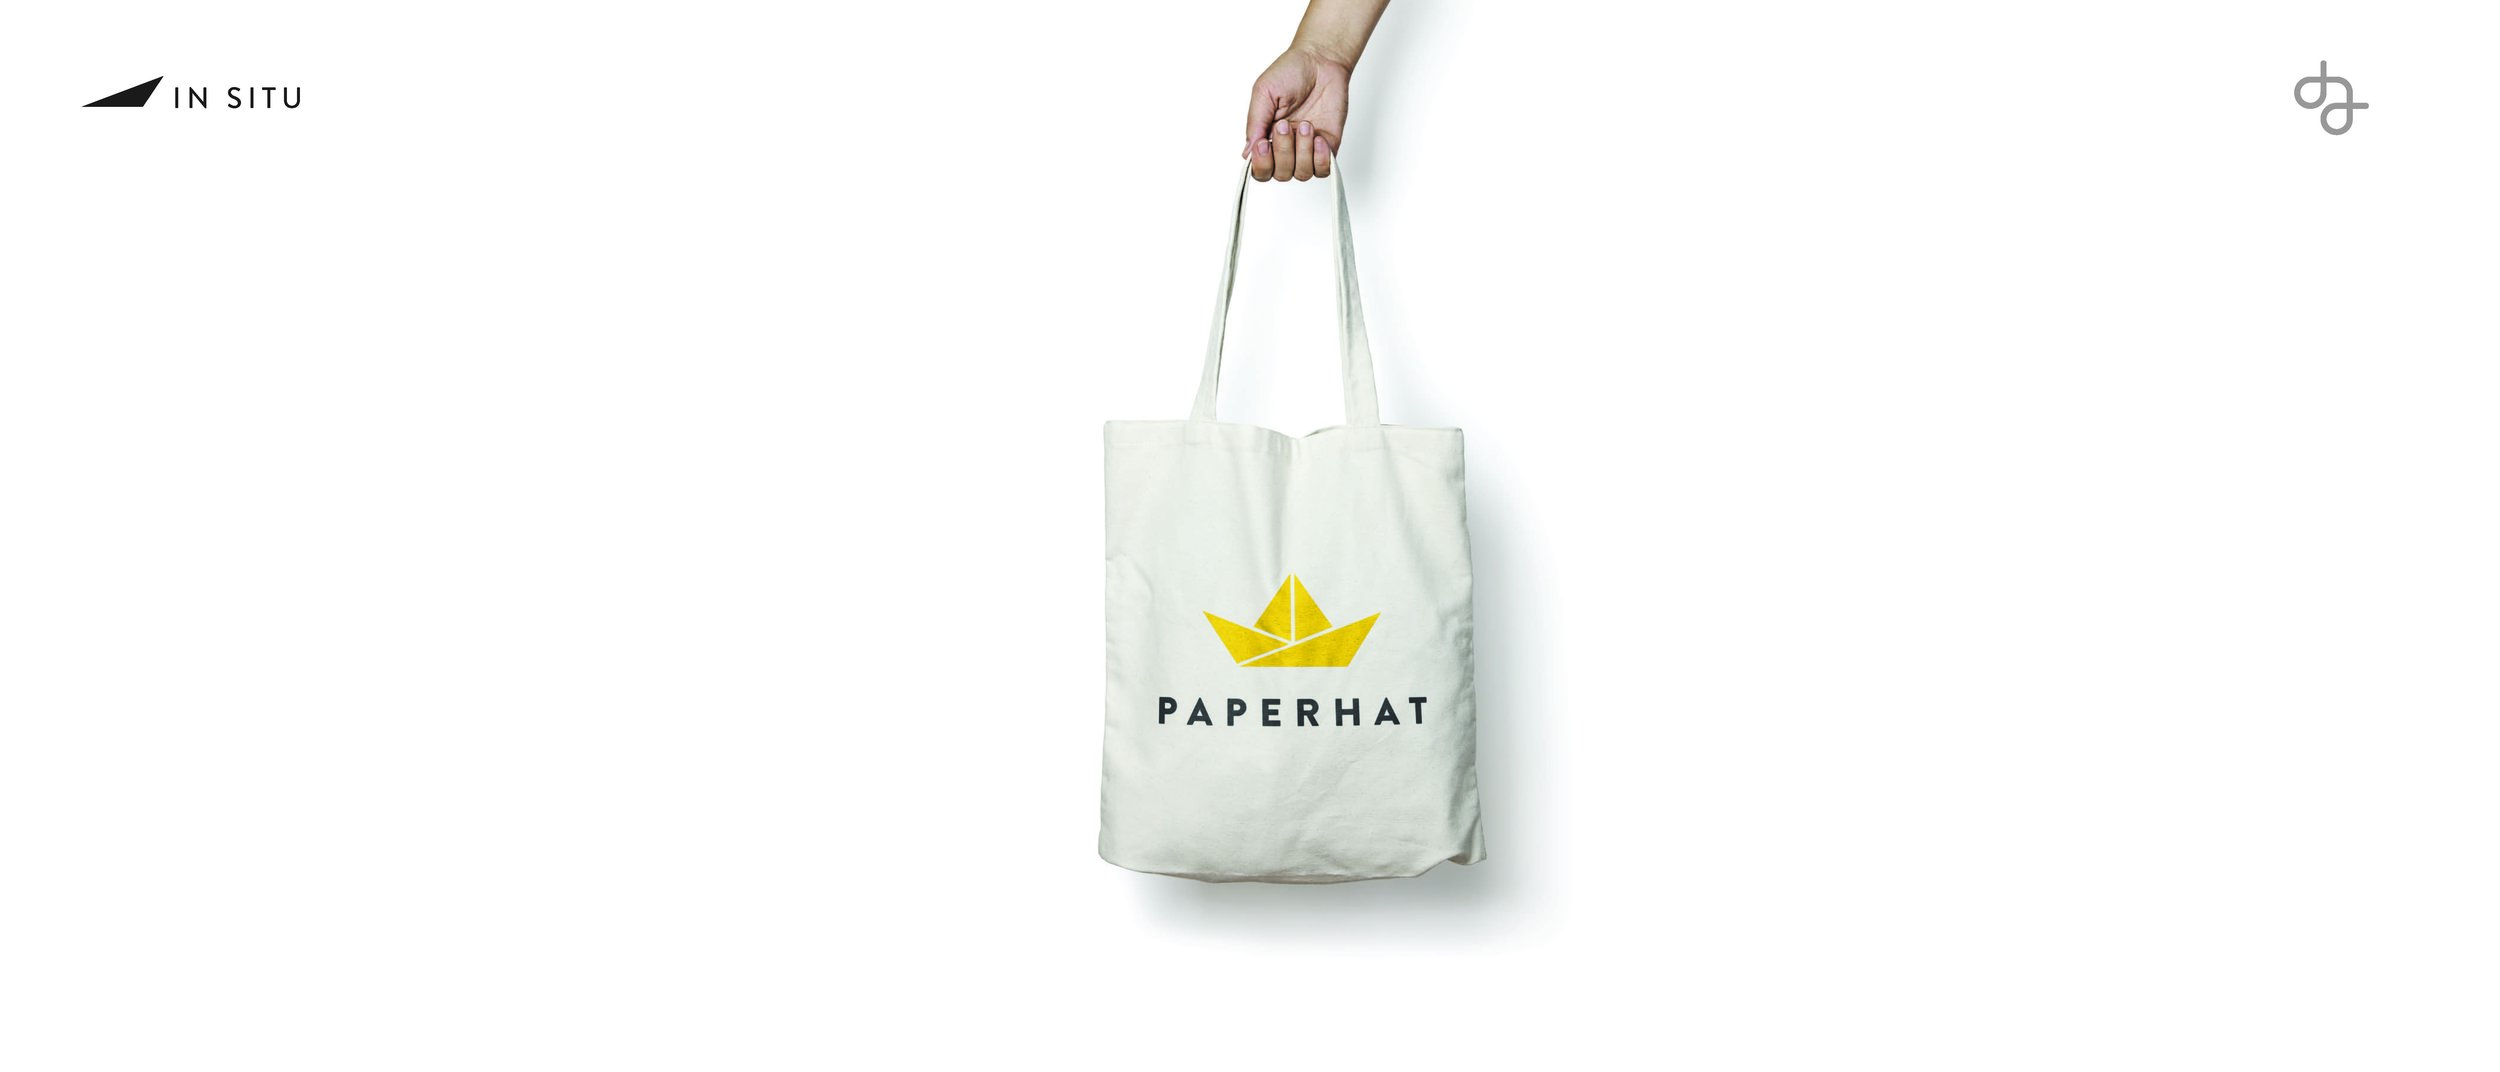 PaperHat Identity_Page_24.jpg